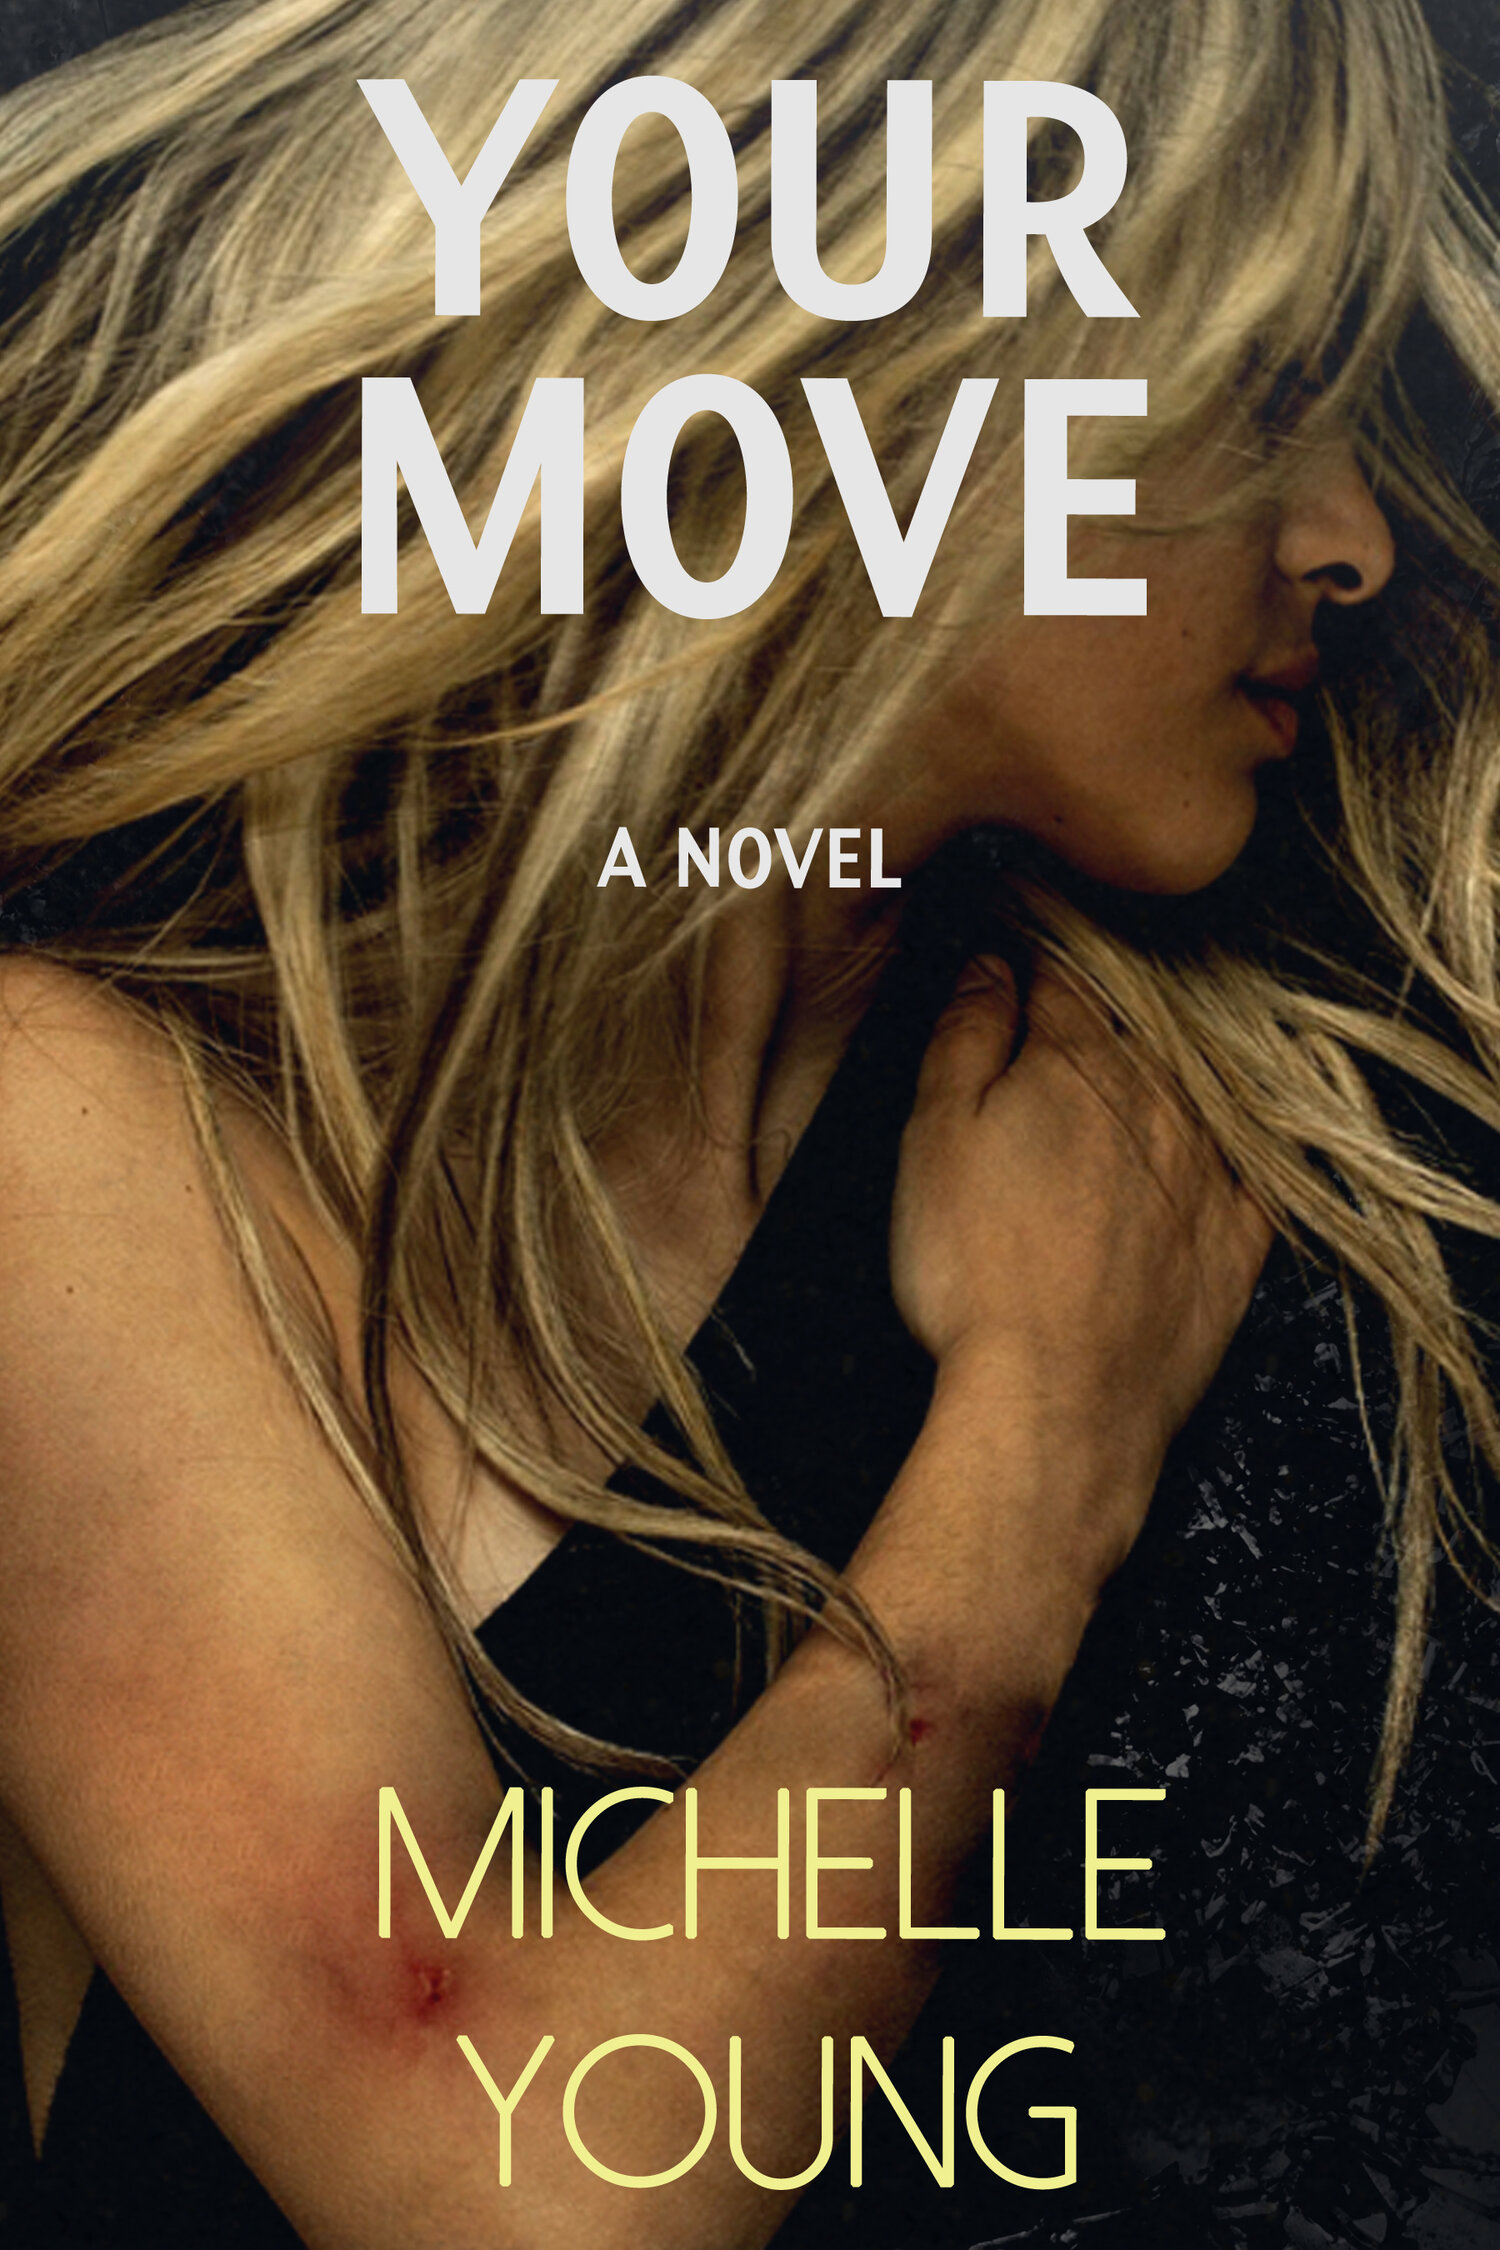 Your Move - Claire Martel learned long ago that even people close to you can't be trusted. She's built a comfortable life for herself while keeping everyone at a distance. When she comes home one day and realizes that someone has been in her apartment, she knows that she is no longer safe and that her deepest secret has been discovered. Nothing is missing, but the message is clear. Who would believe her? Who can she trust?Feeling the walls closing in, Claire finds herself in the middle of a murder investigation as a person of interest. Her home is no longer safe. Her best option is to disappear—again. She leaves her life behind, only to wind up running into danger, not away from it. Claire must push through her fears and find strength within herself as she ends up in a battle for her life.